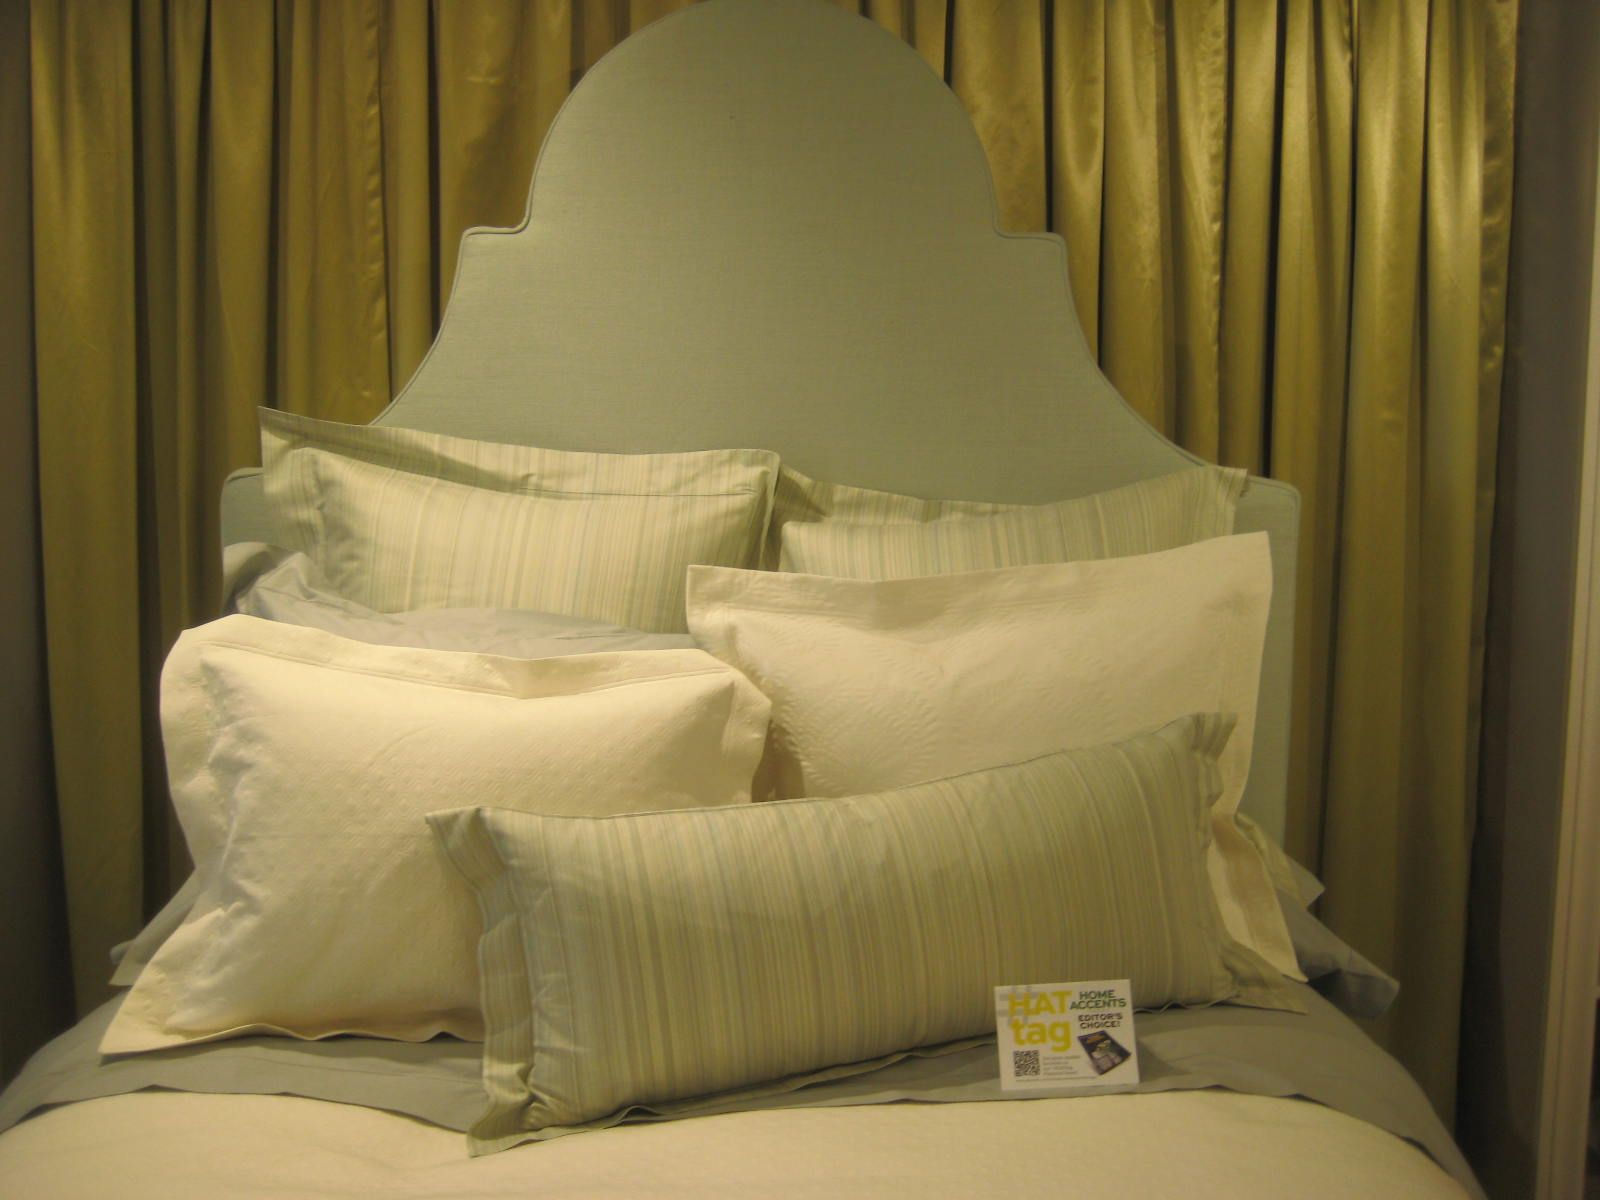 The Annie Selke Luxe Collection of European bedding from